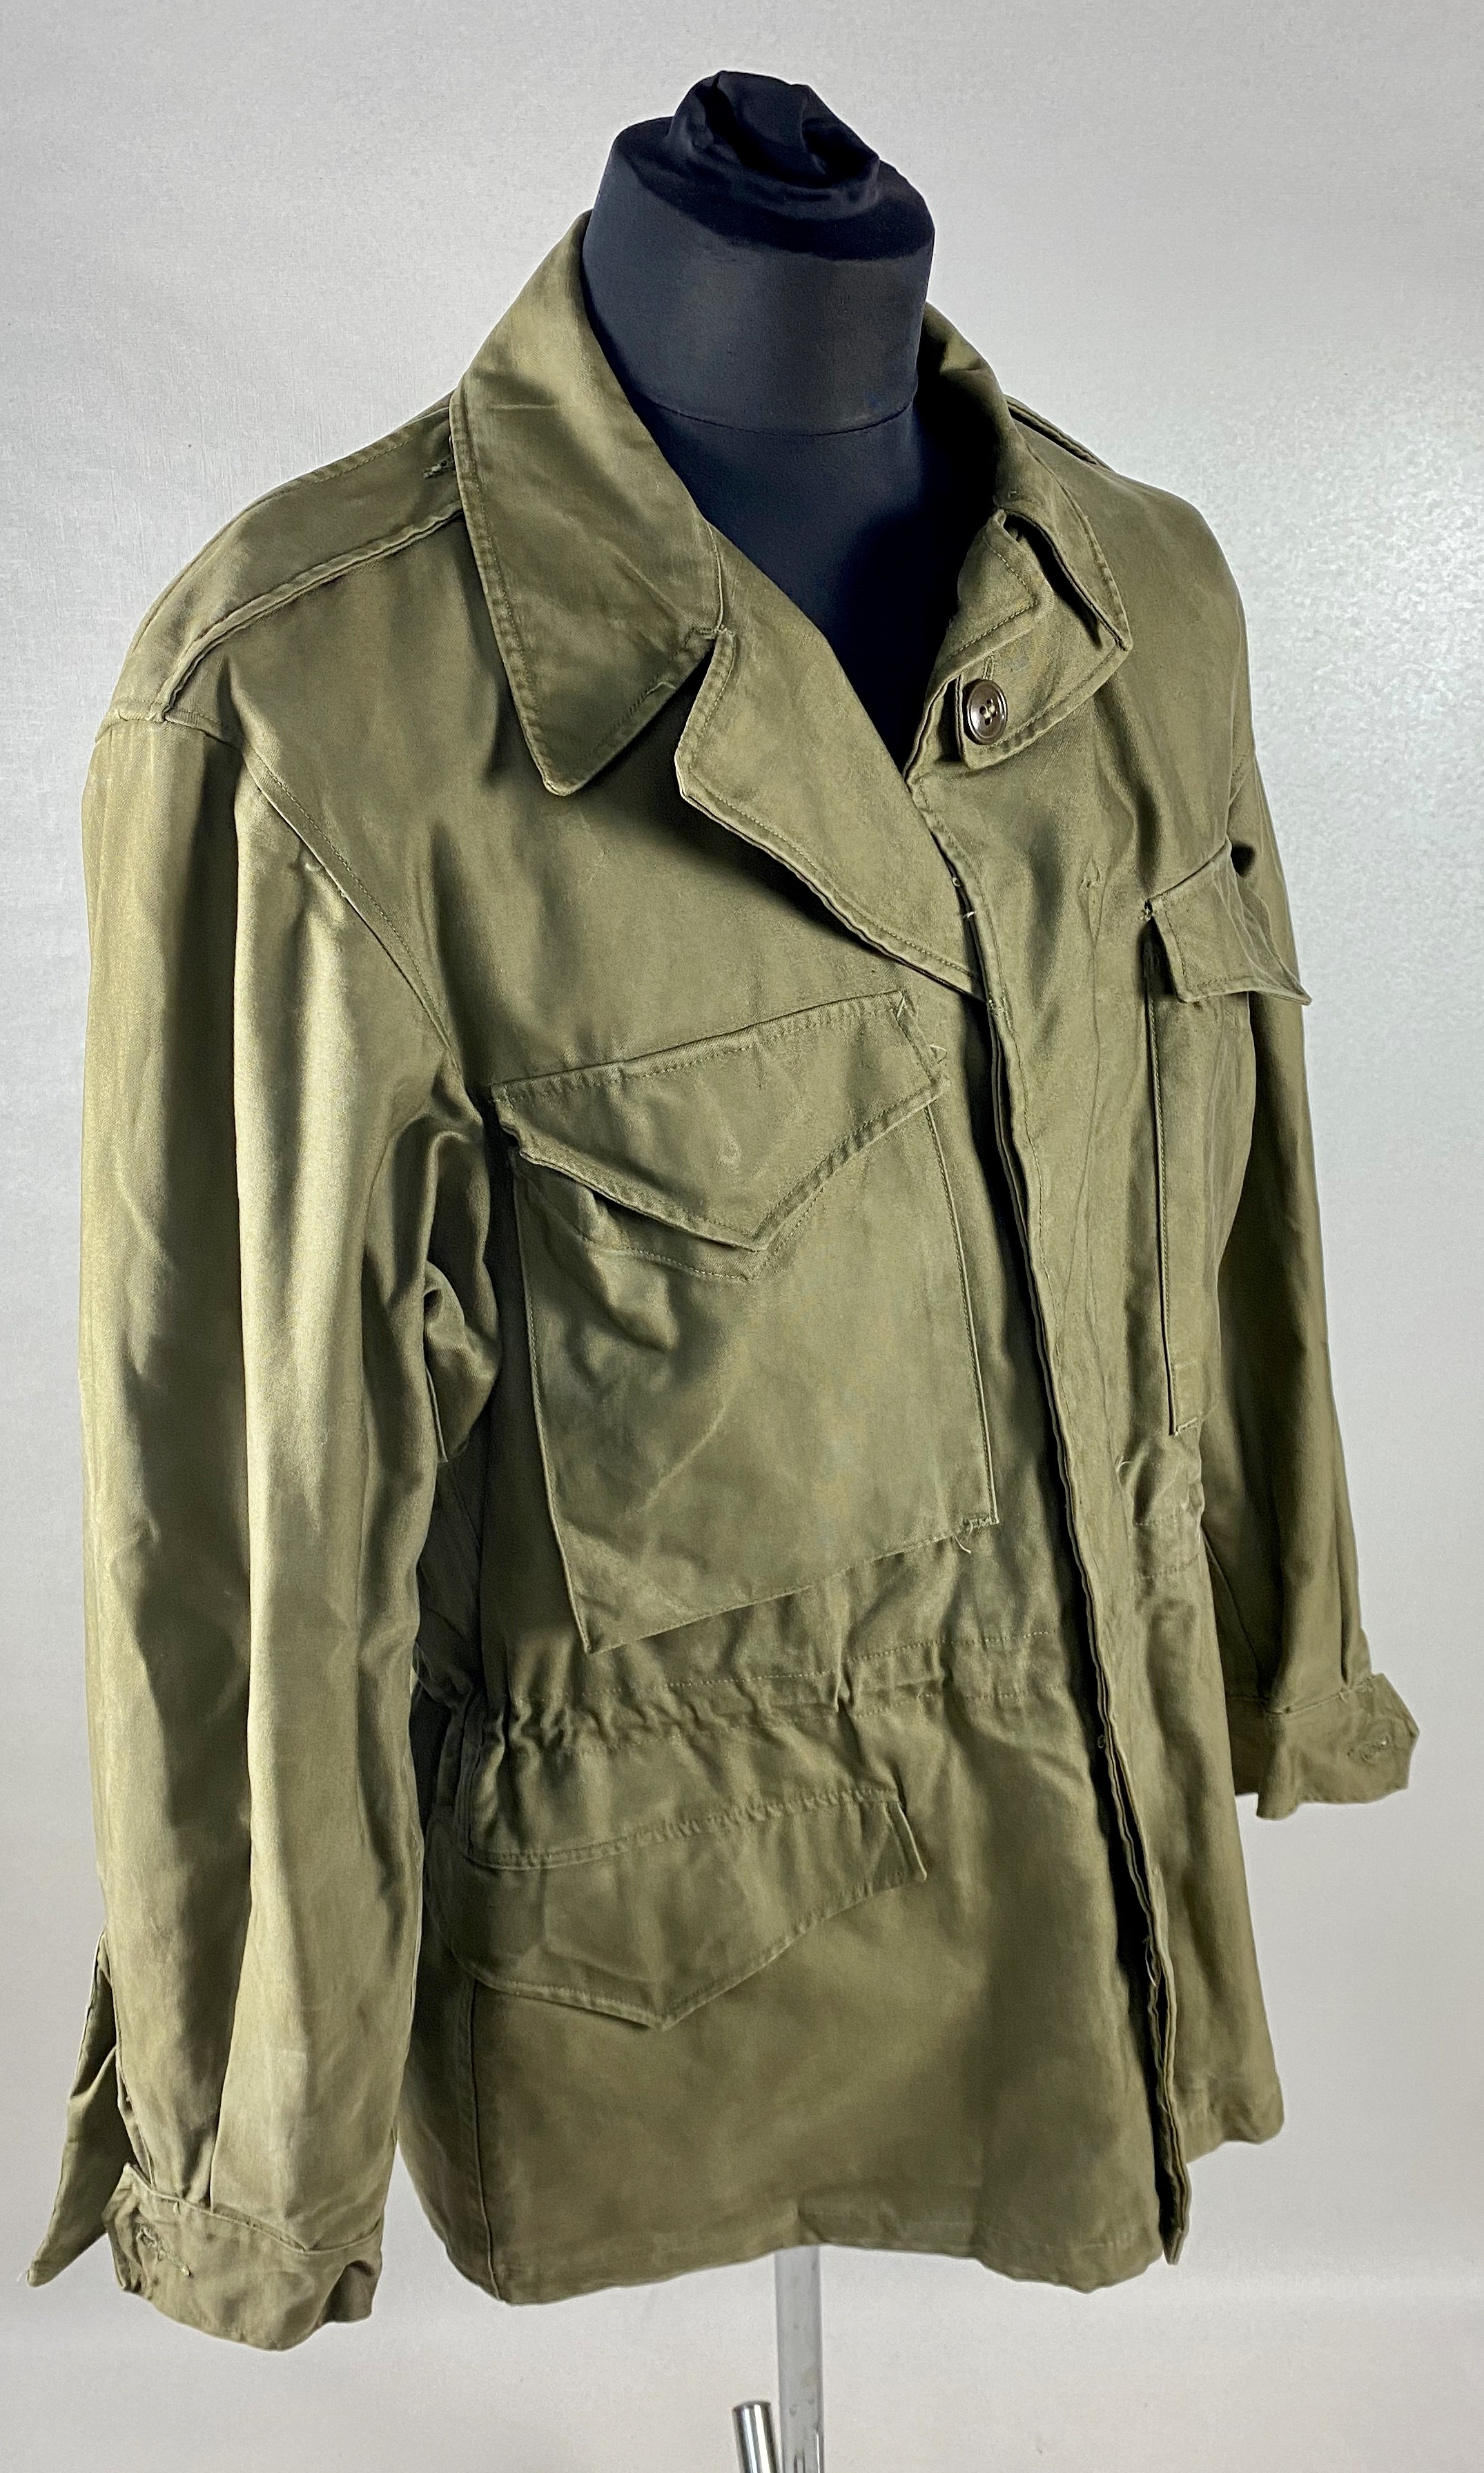 UN-JACKET FIELD 1943 US WWII